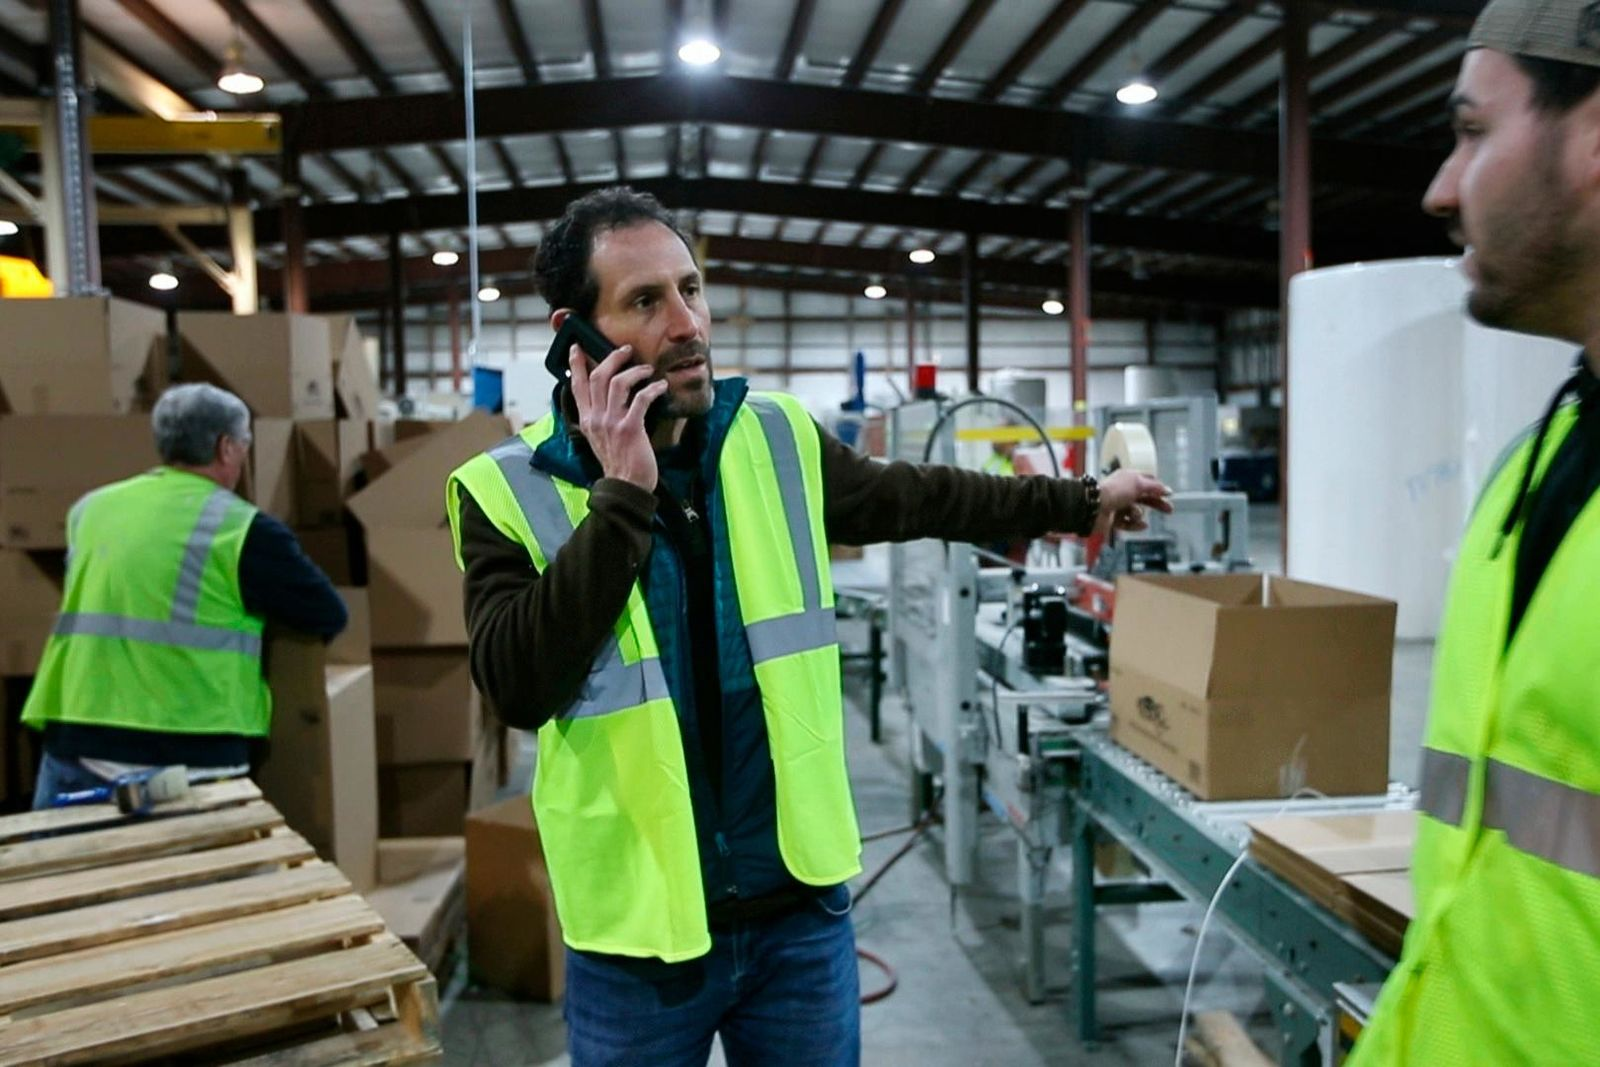 Marc Cooper takes a call while directing workers packing toilet paper at the Tissue Plus factory, Wednesday, March 18, 2020, in Bangor, Maine. The new company has been unexpectedly busy because of the shortage of toilet paper brought on by hoarders concerned about the coronavirus. (AP Photo/Robert F. Bukaty)